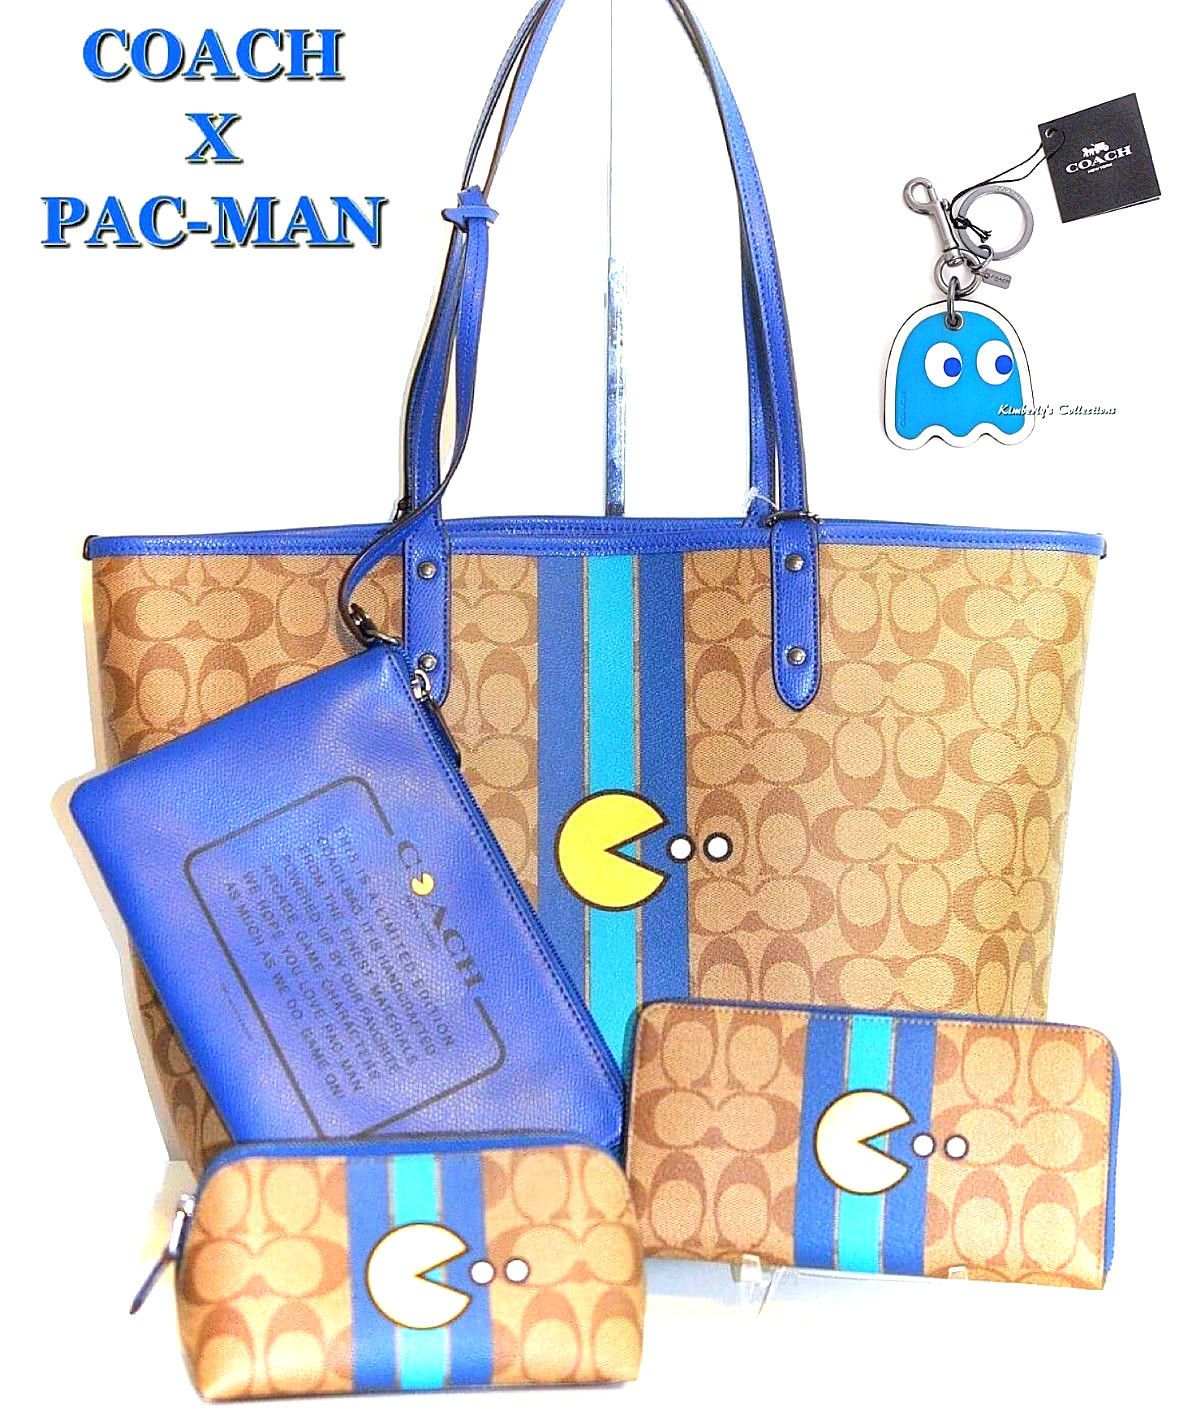 COACH X PACMAN Limited Tote Bag Pouch Cosmetic Case Wallet